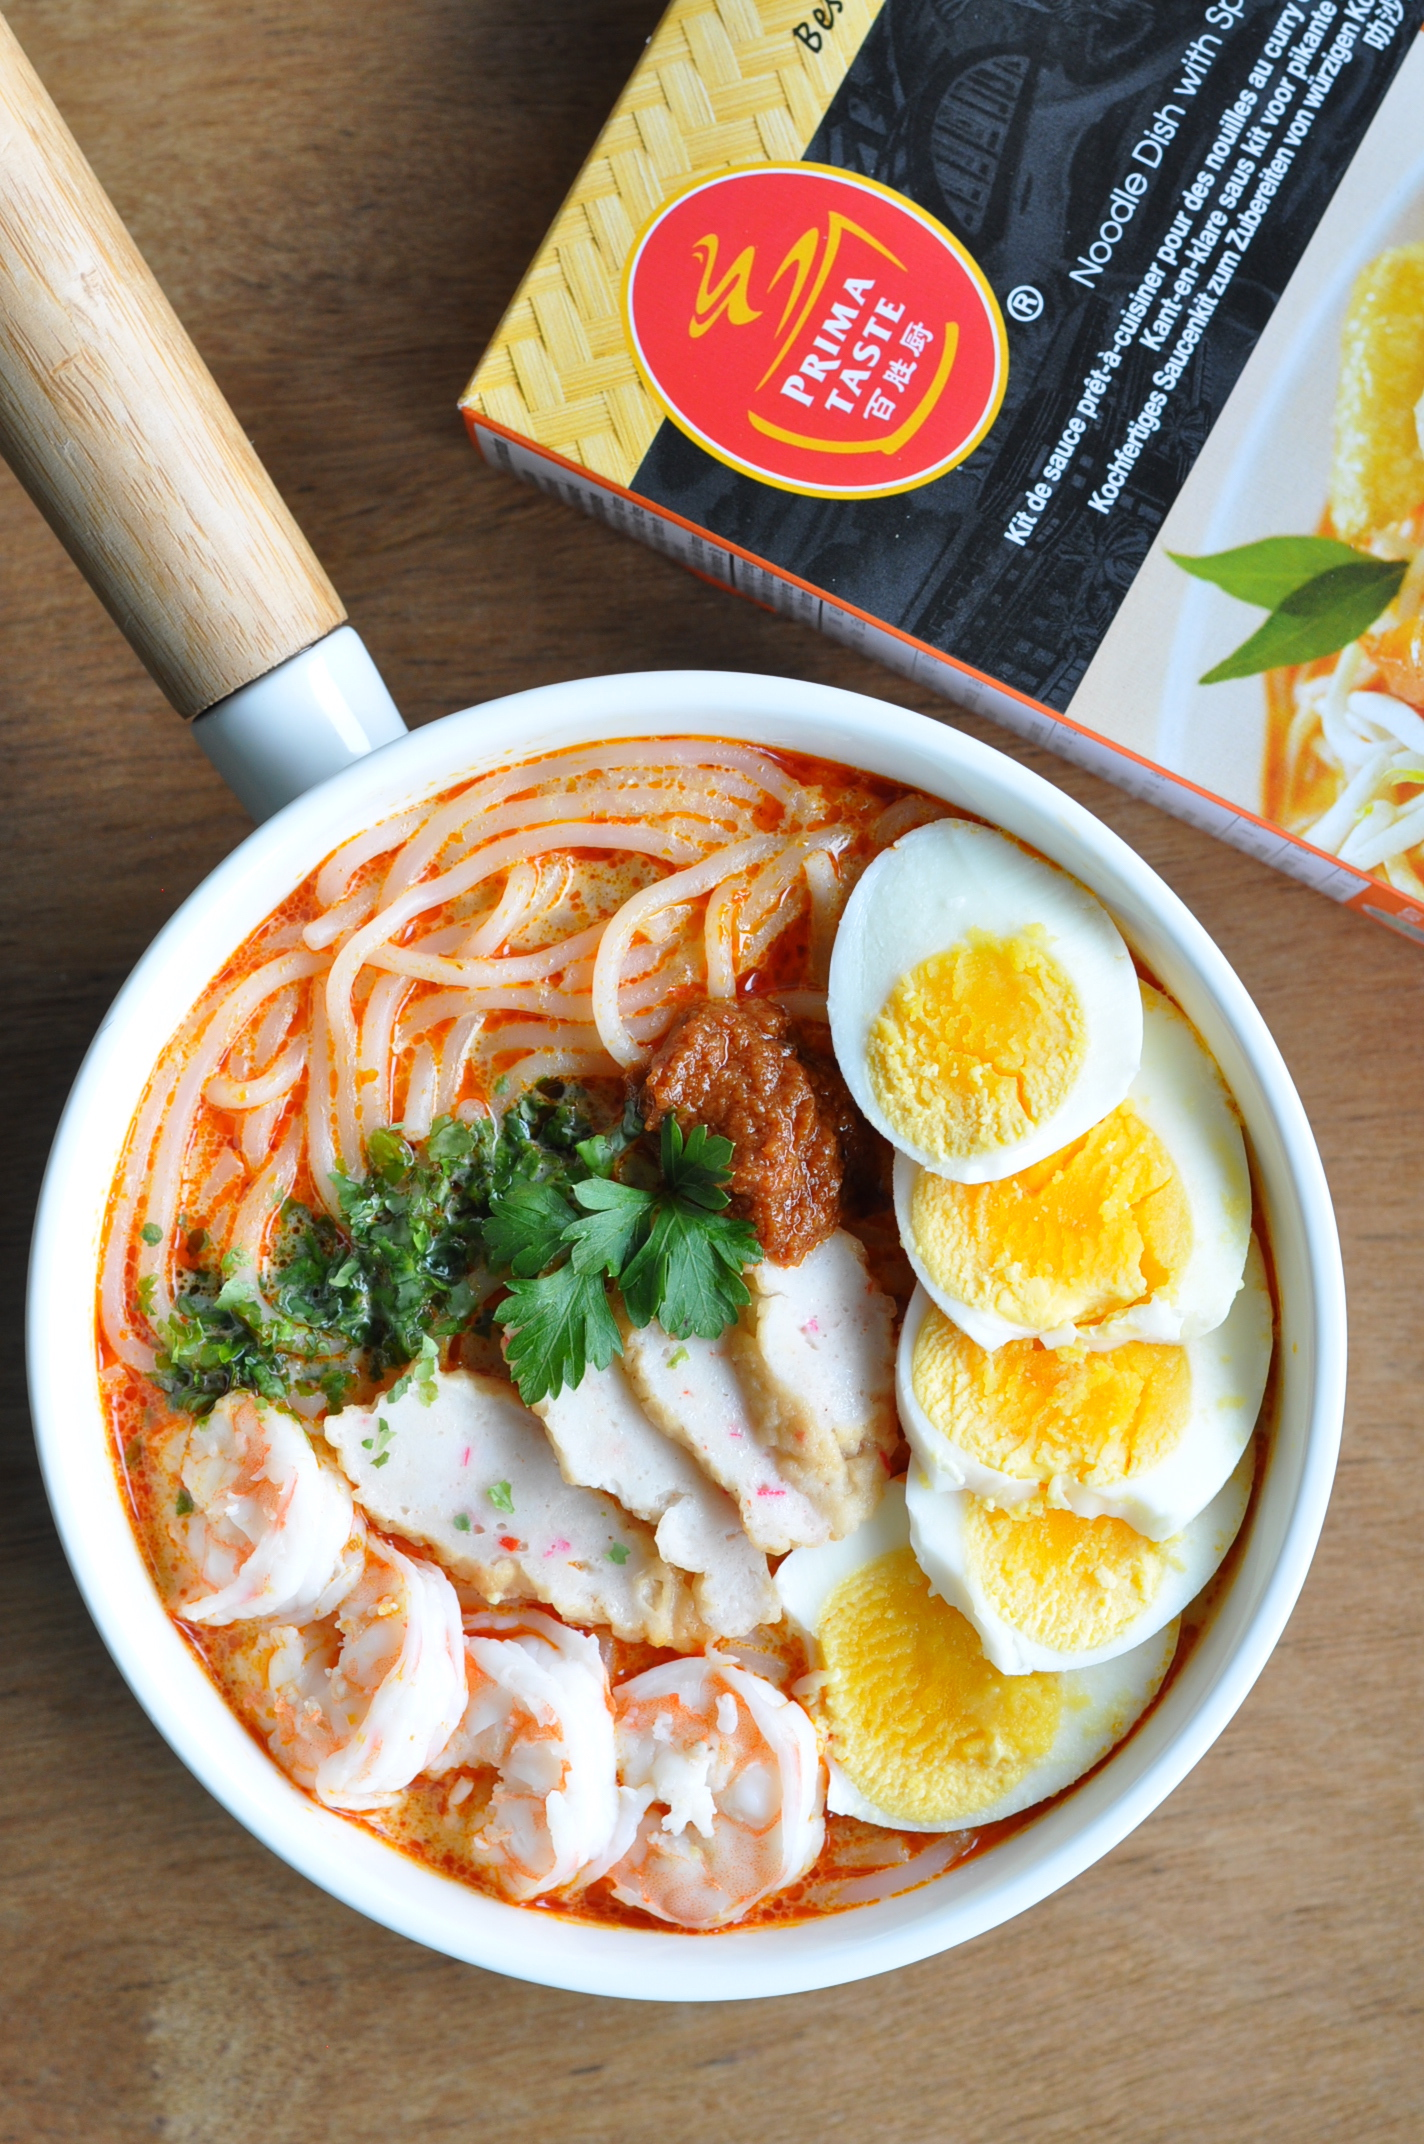 Eat what tonight singapore food recipes blog on feedspot rss feed and primataste being a local homegrown brand had come out with a convenient ready to cook meal kit that makes cooking of this local dish such a no brainer forumfinder Images